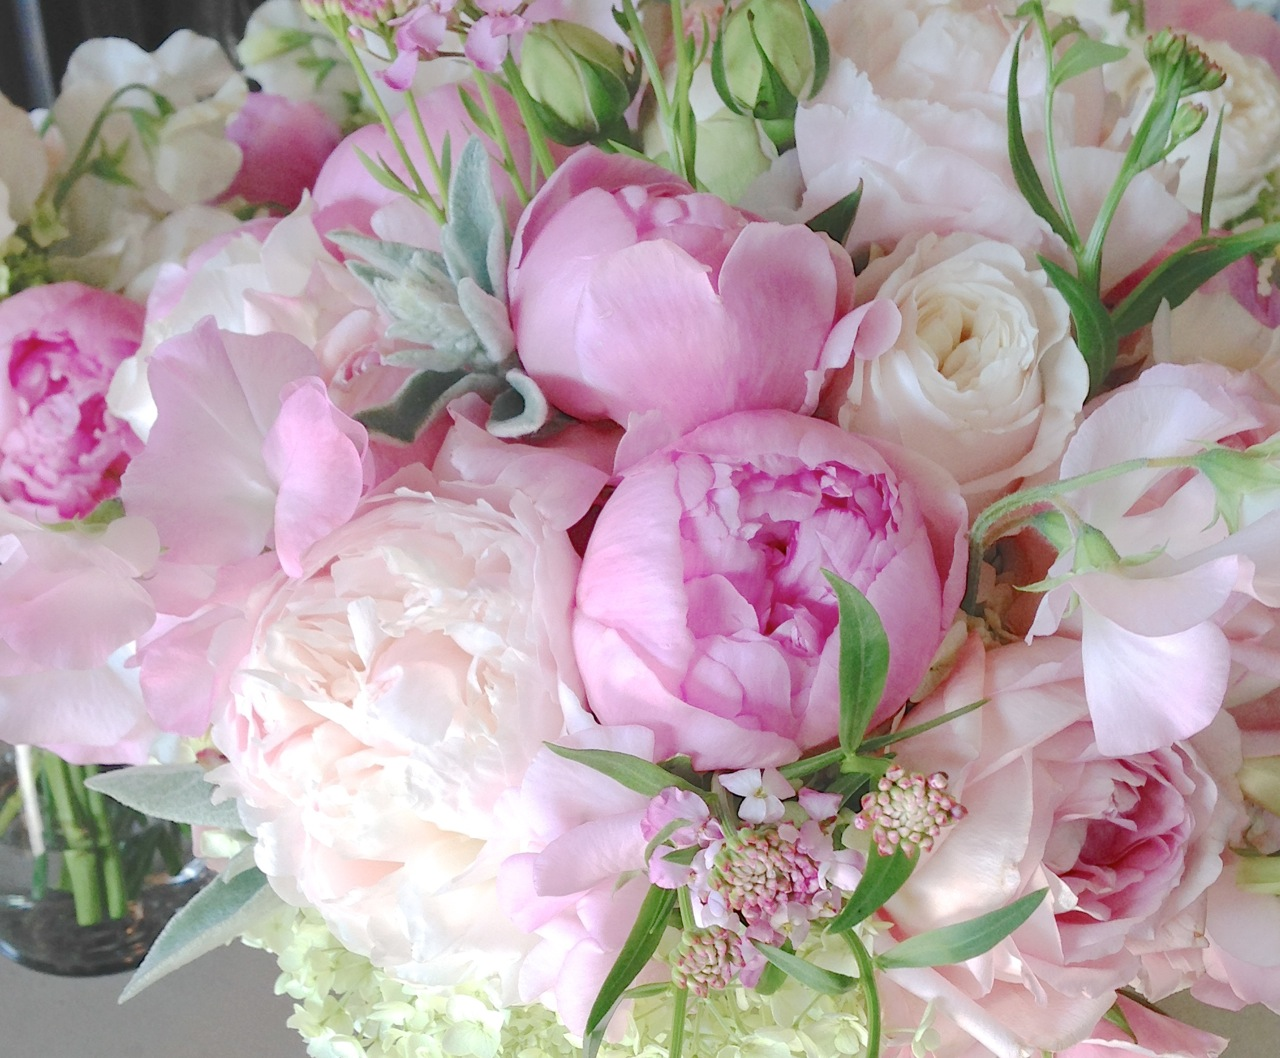 christopher flowers seattle bouquet pink blush peony garden rose sweet pea hydrangea green ivory local organic - Garden Rose And Hydrangea Bouquet